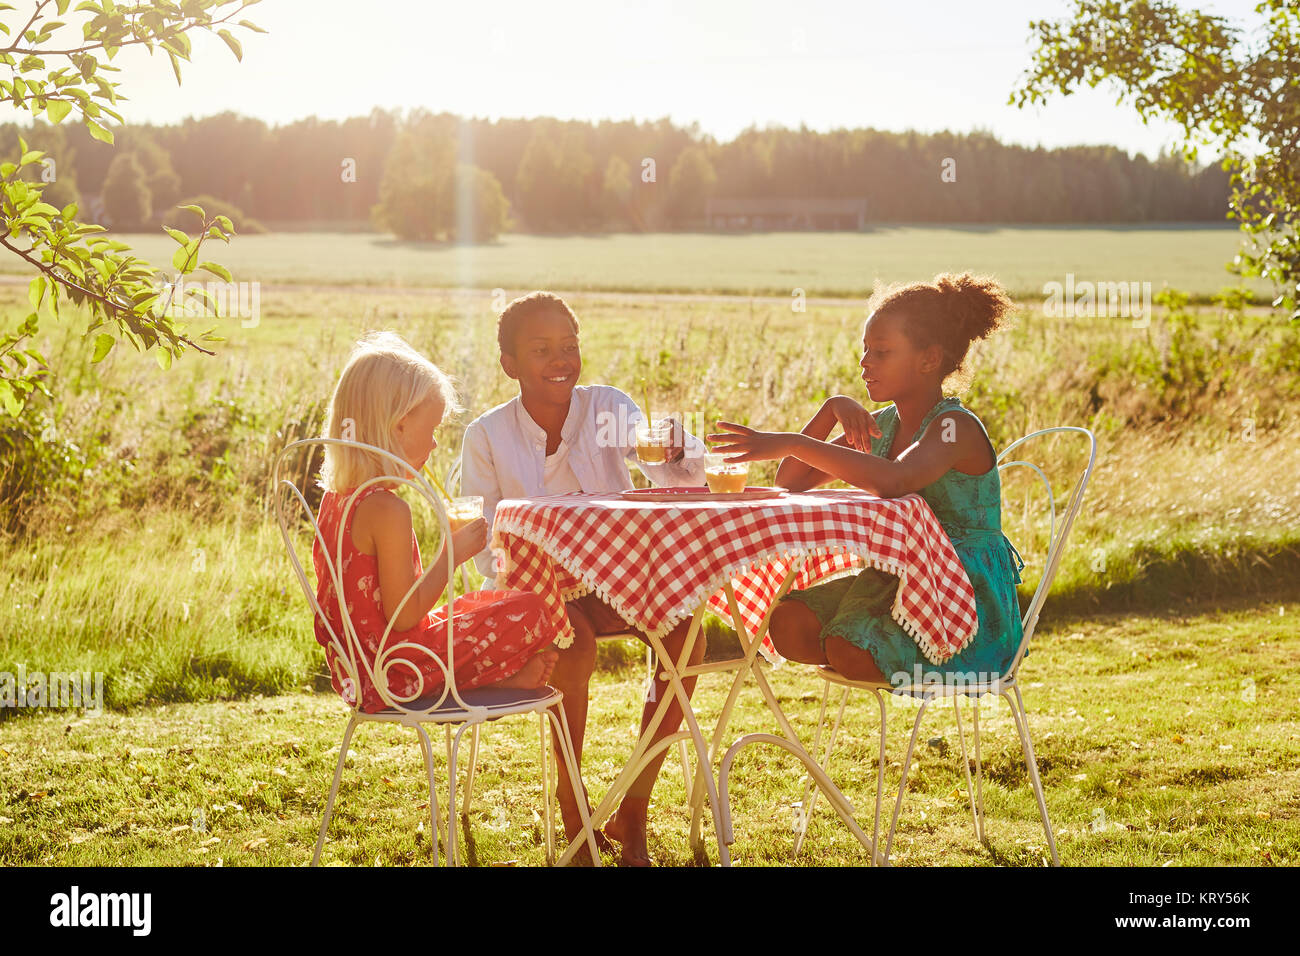 Children at a table outside - Stock Image